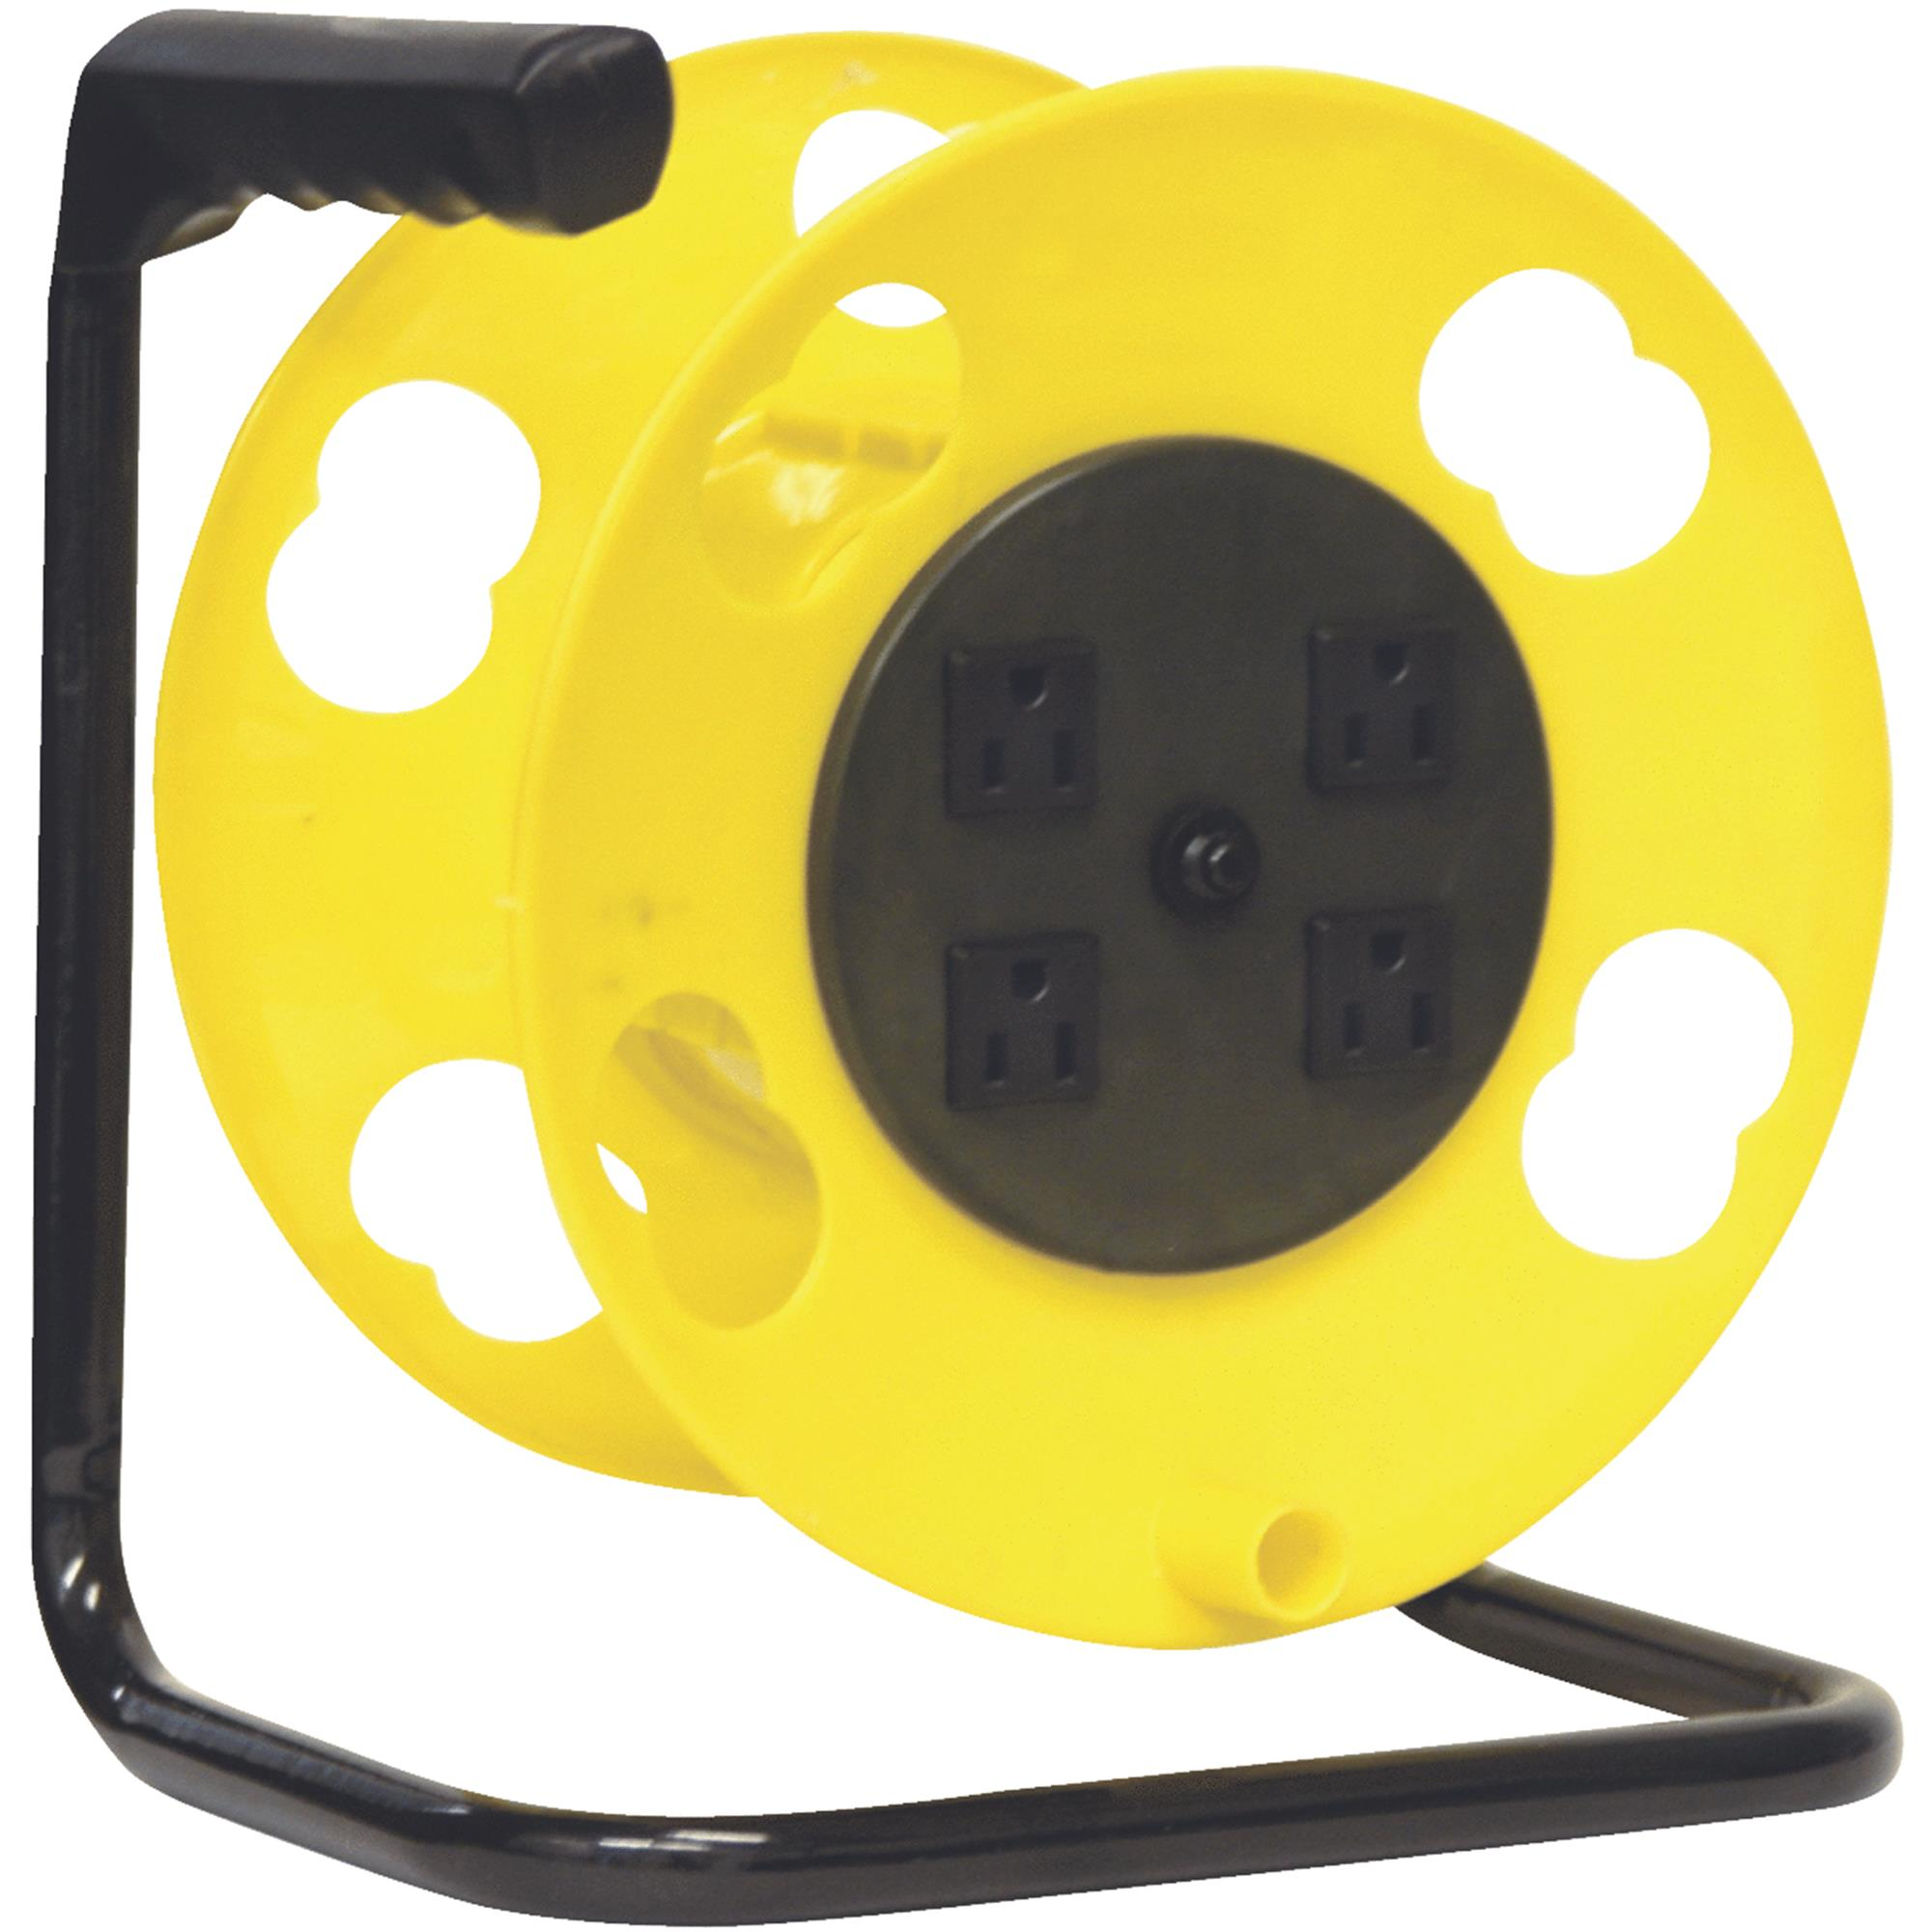 Bayco SL-2000PDQ Cord Storage Reel with 4 Outlets and Resettable 15A Circuit Breaker